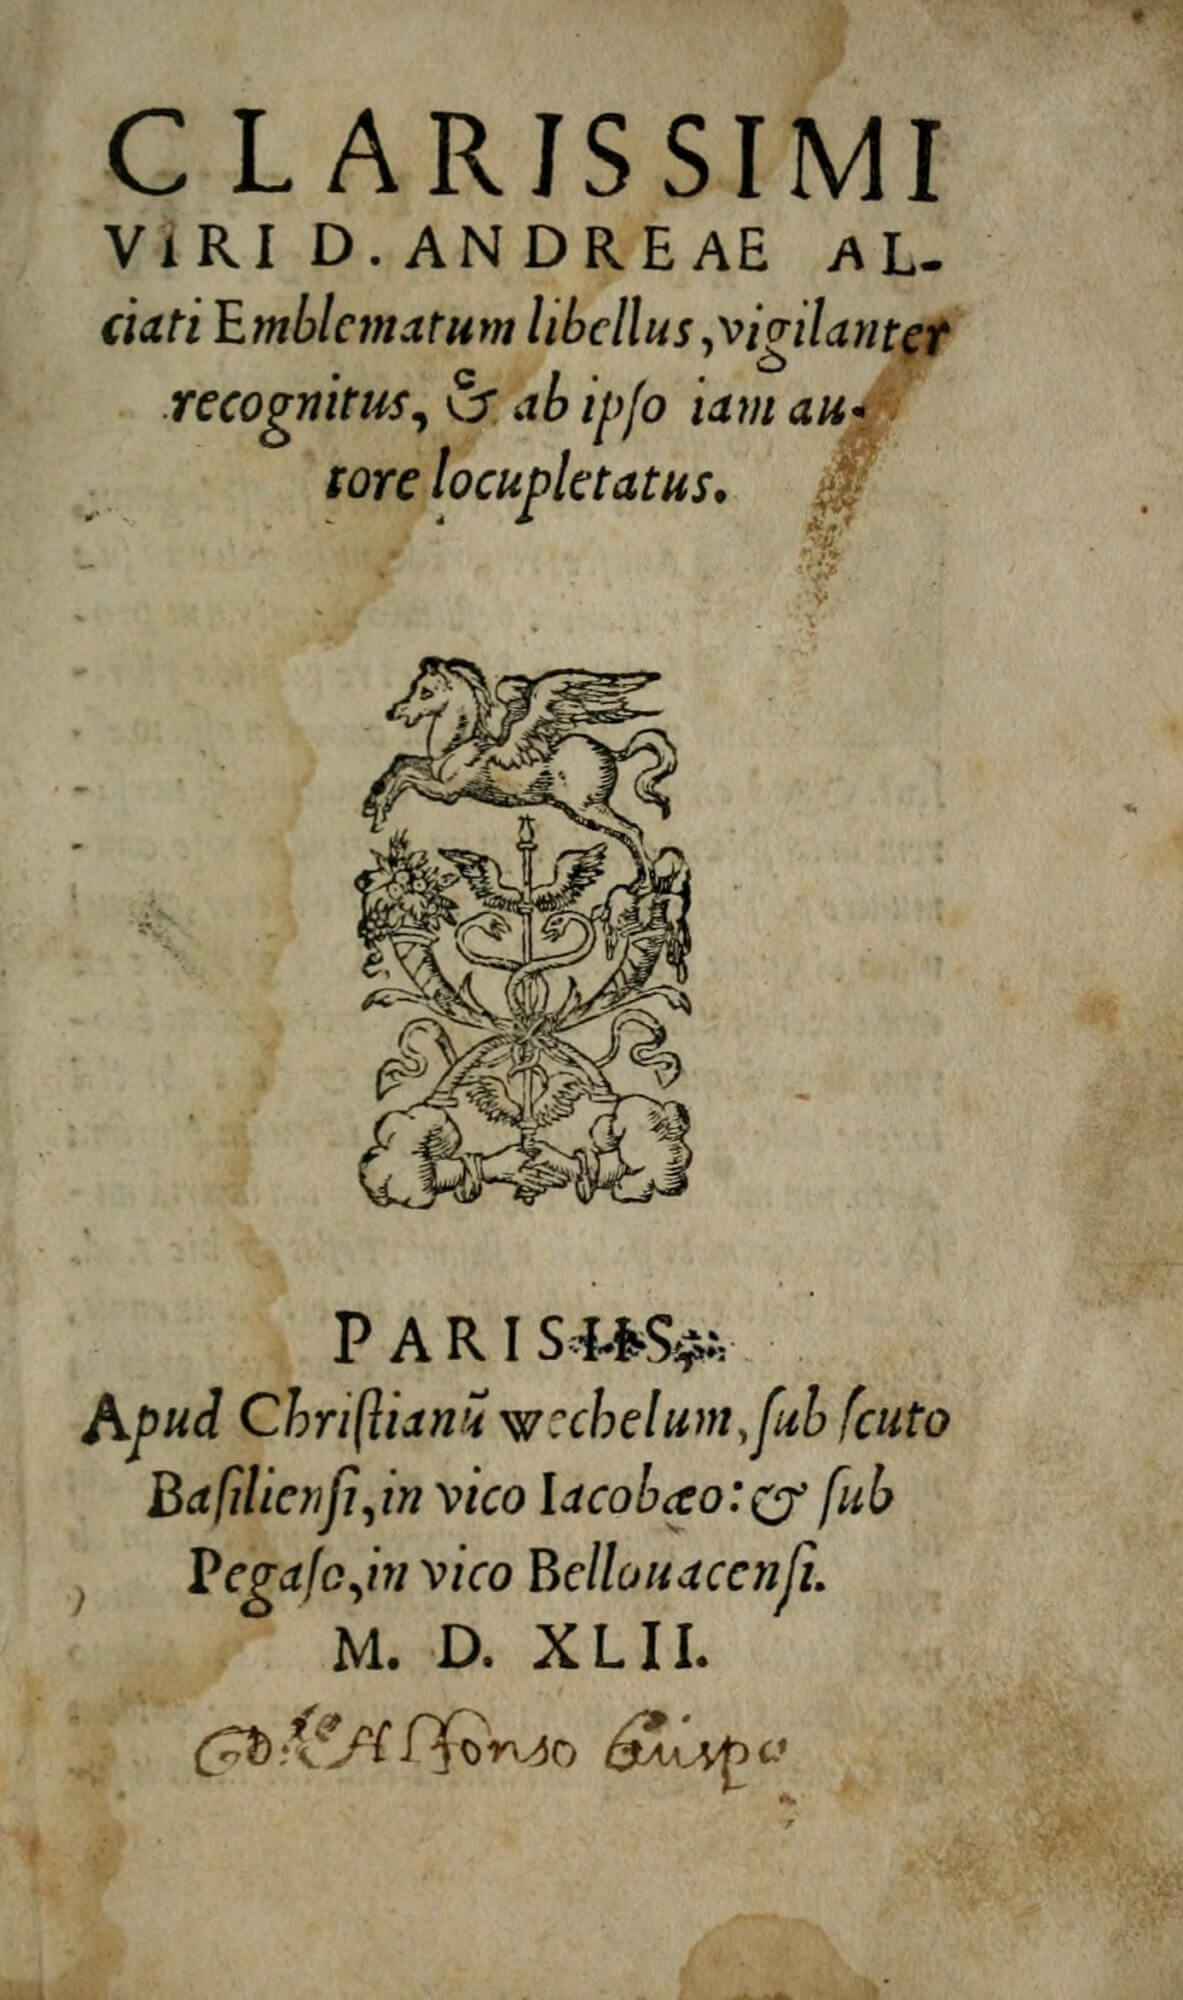 """Chrestian Wechsel's printer's device is here fittingly shown on the title page of his edition of Alciati's Emblemata, which he printed in close conversation with the author. The device is adapted from the emblem """"Virtuti Fortuna comes"""" or """"Good fortune attendant on virtue."""""""